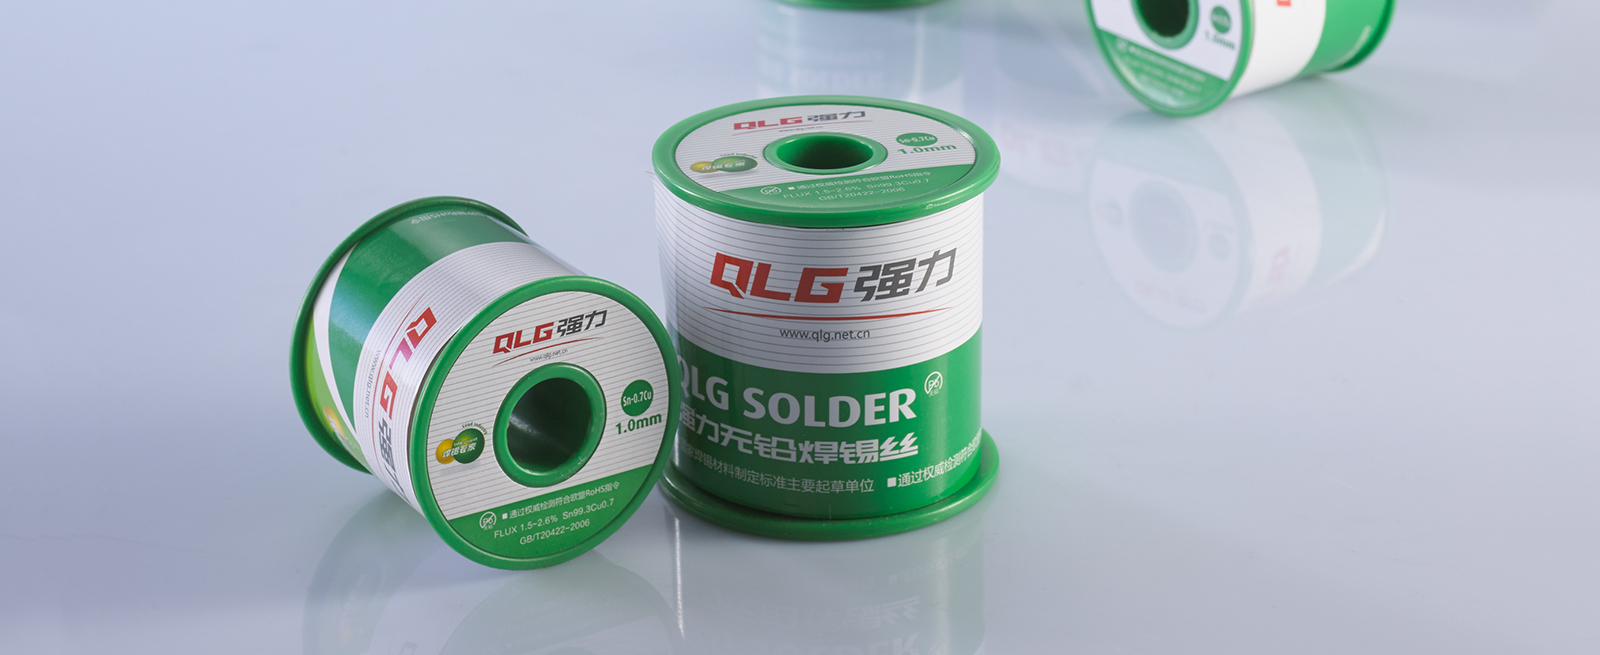 LEAD-FREE SOLDER WIRE AND VARIETY